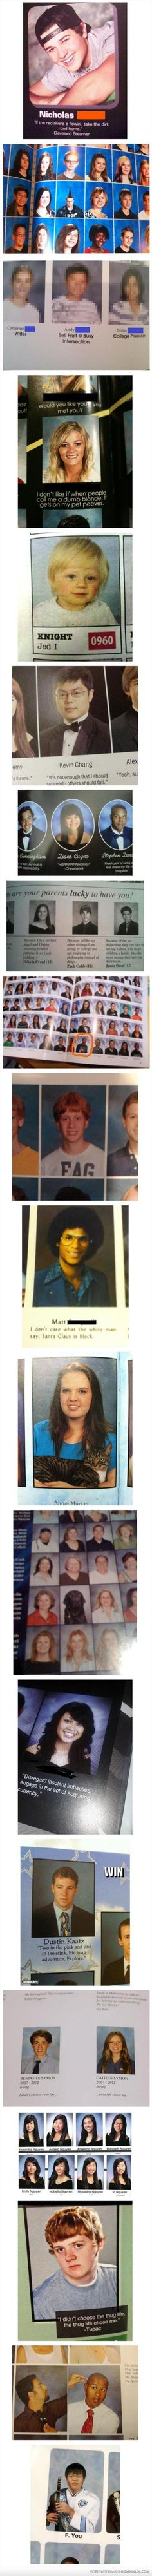 Great Moments In Yearbook Photo Awesomeness